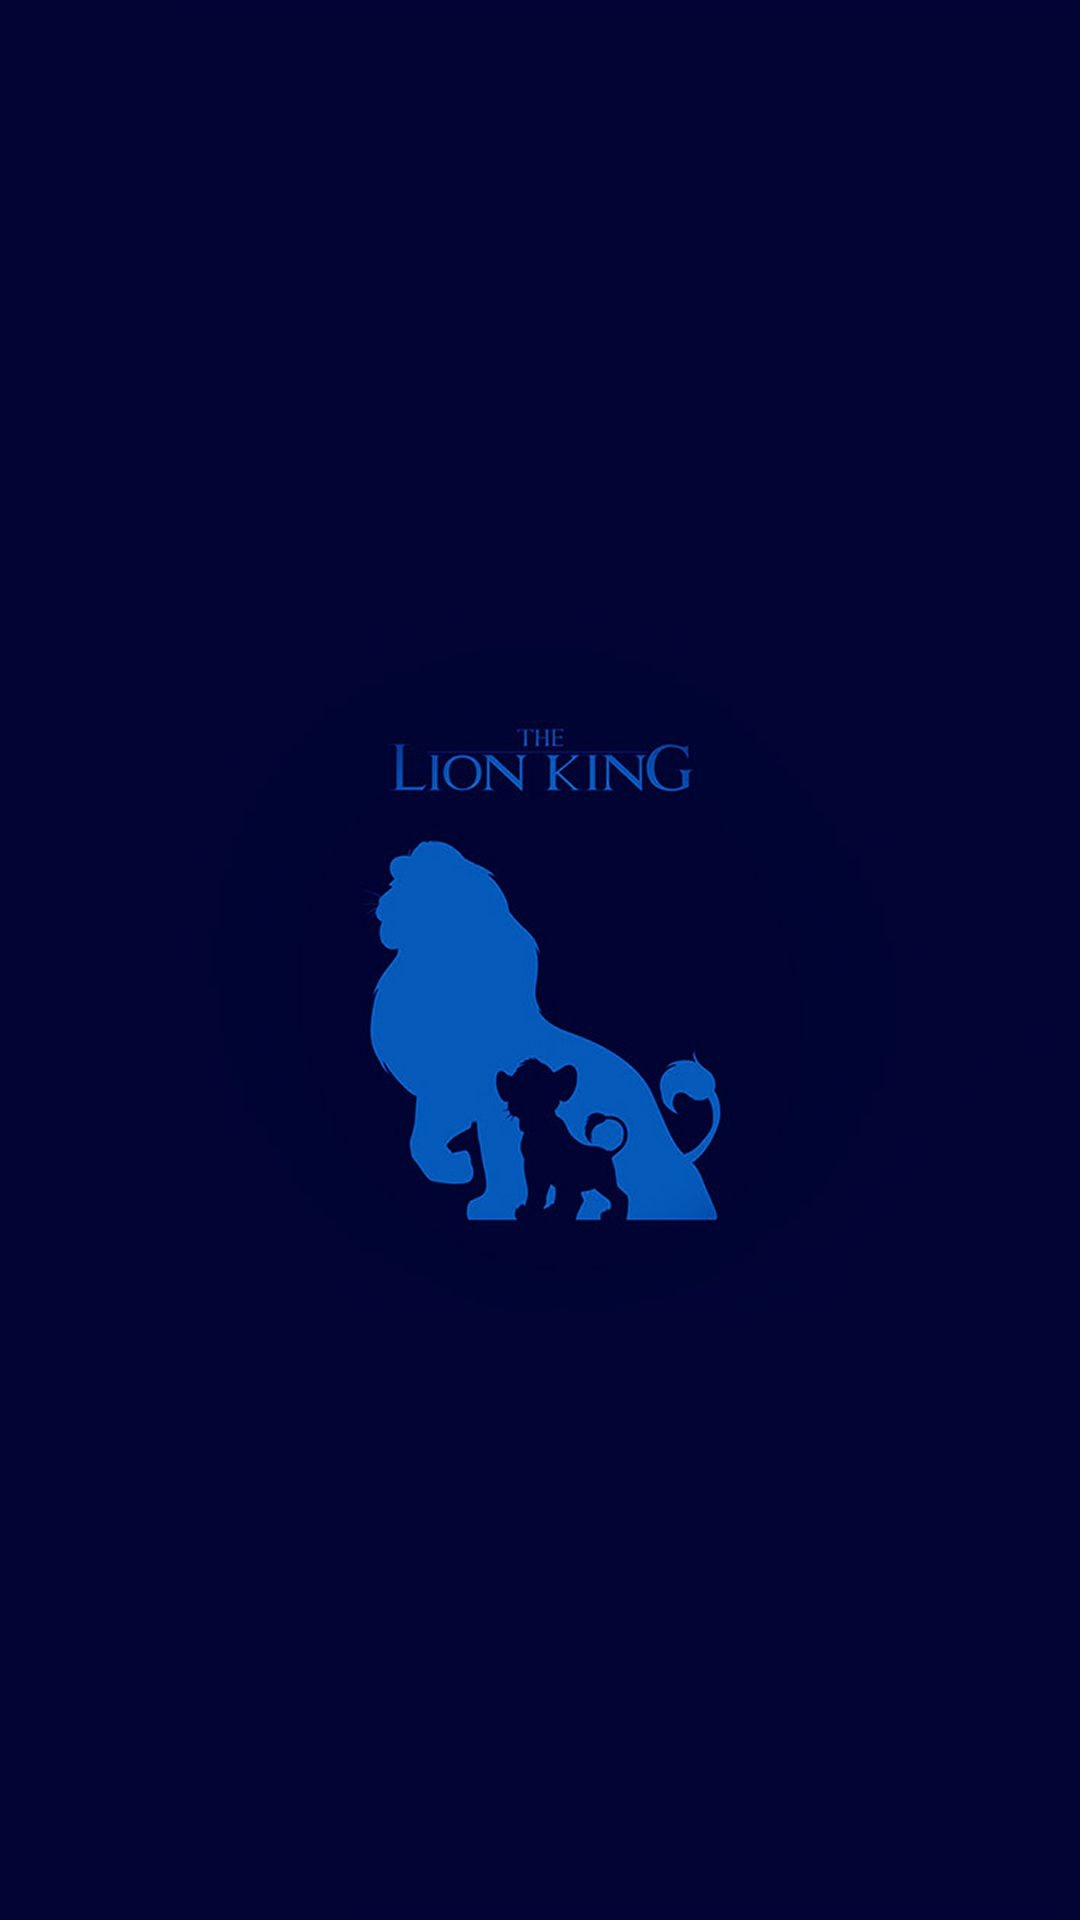 The Lion King Blue Minimal Art Iphone 6 Wallpaper Download Iphone Wallpapers Ipad Wallpapers One Stop Download Lion King Abstract Lion Lion Wallpaper